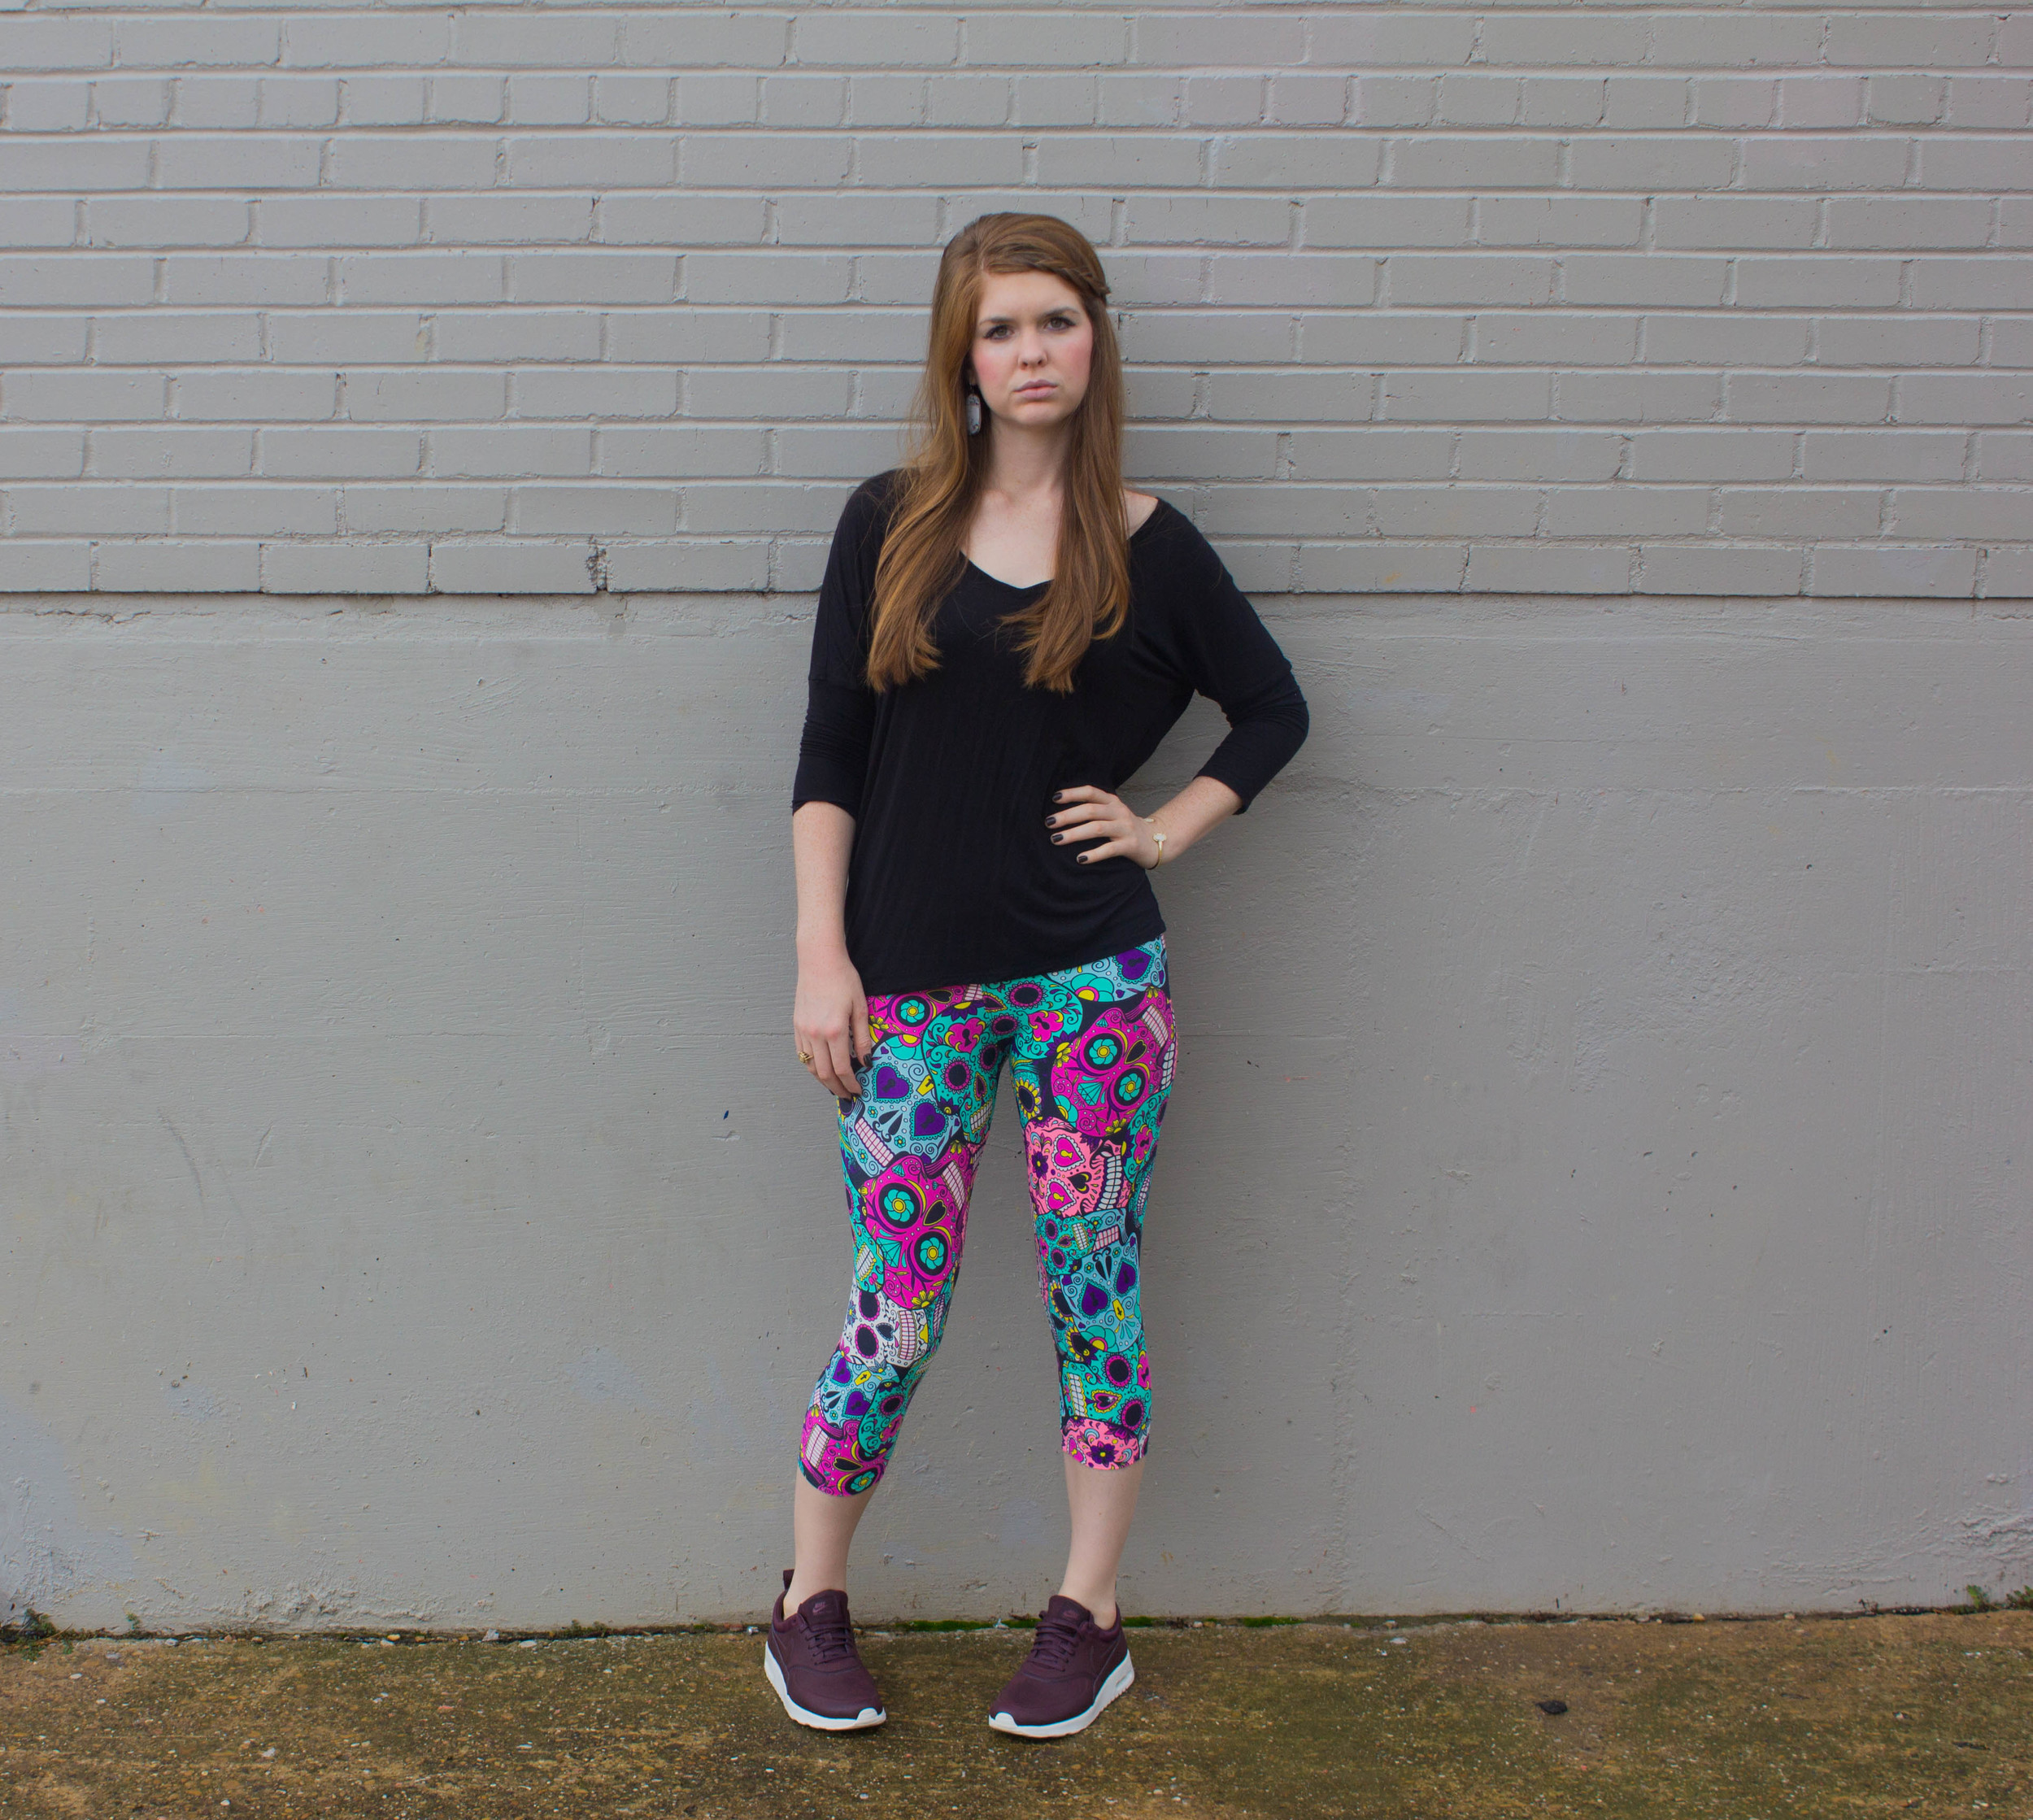 kast fitness wear, sugar skull leggings, kit and ace top, nike air max thea tennis shoes